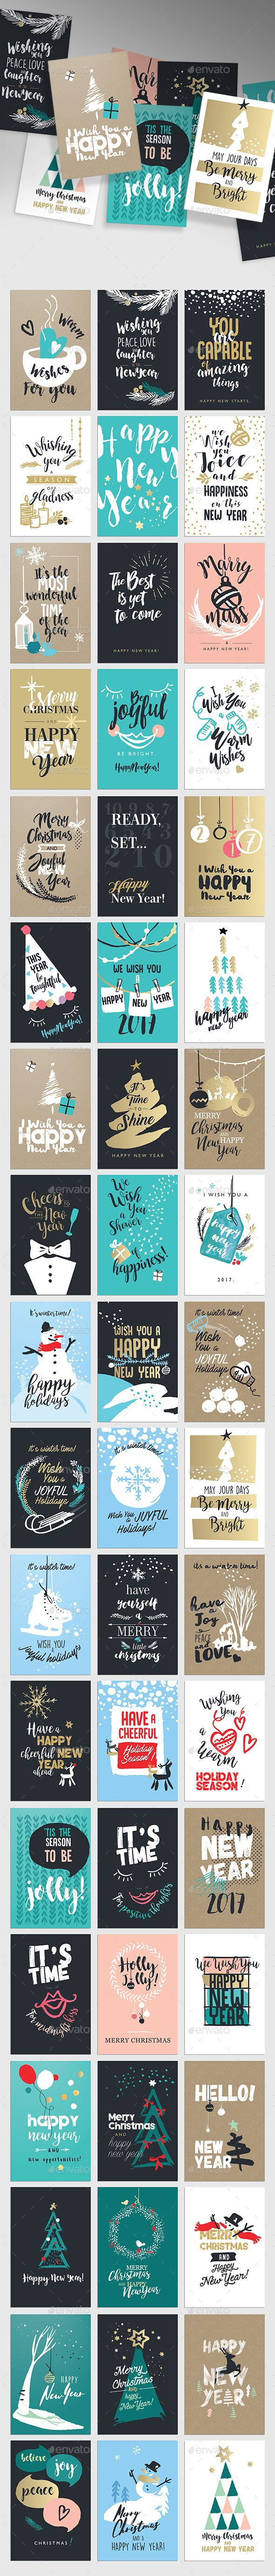 best online greeting cards ideas lance christmas and new year s greeting cards